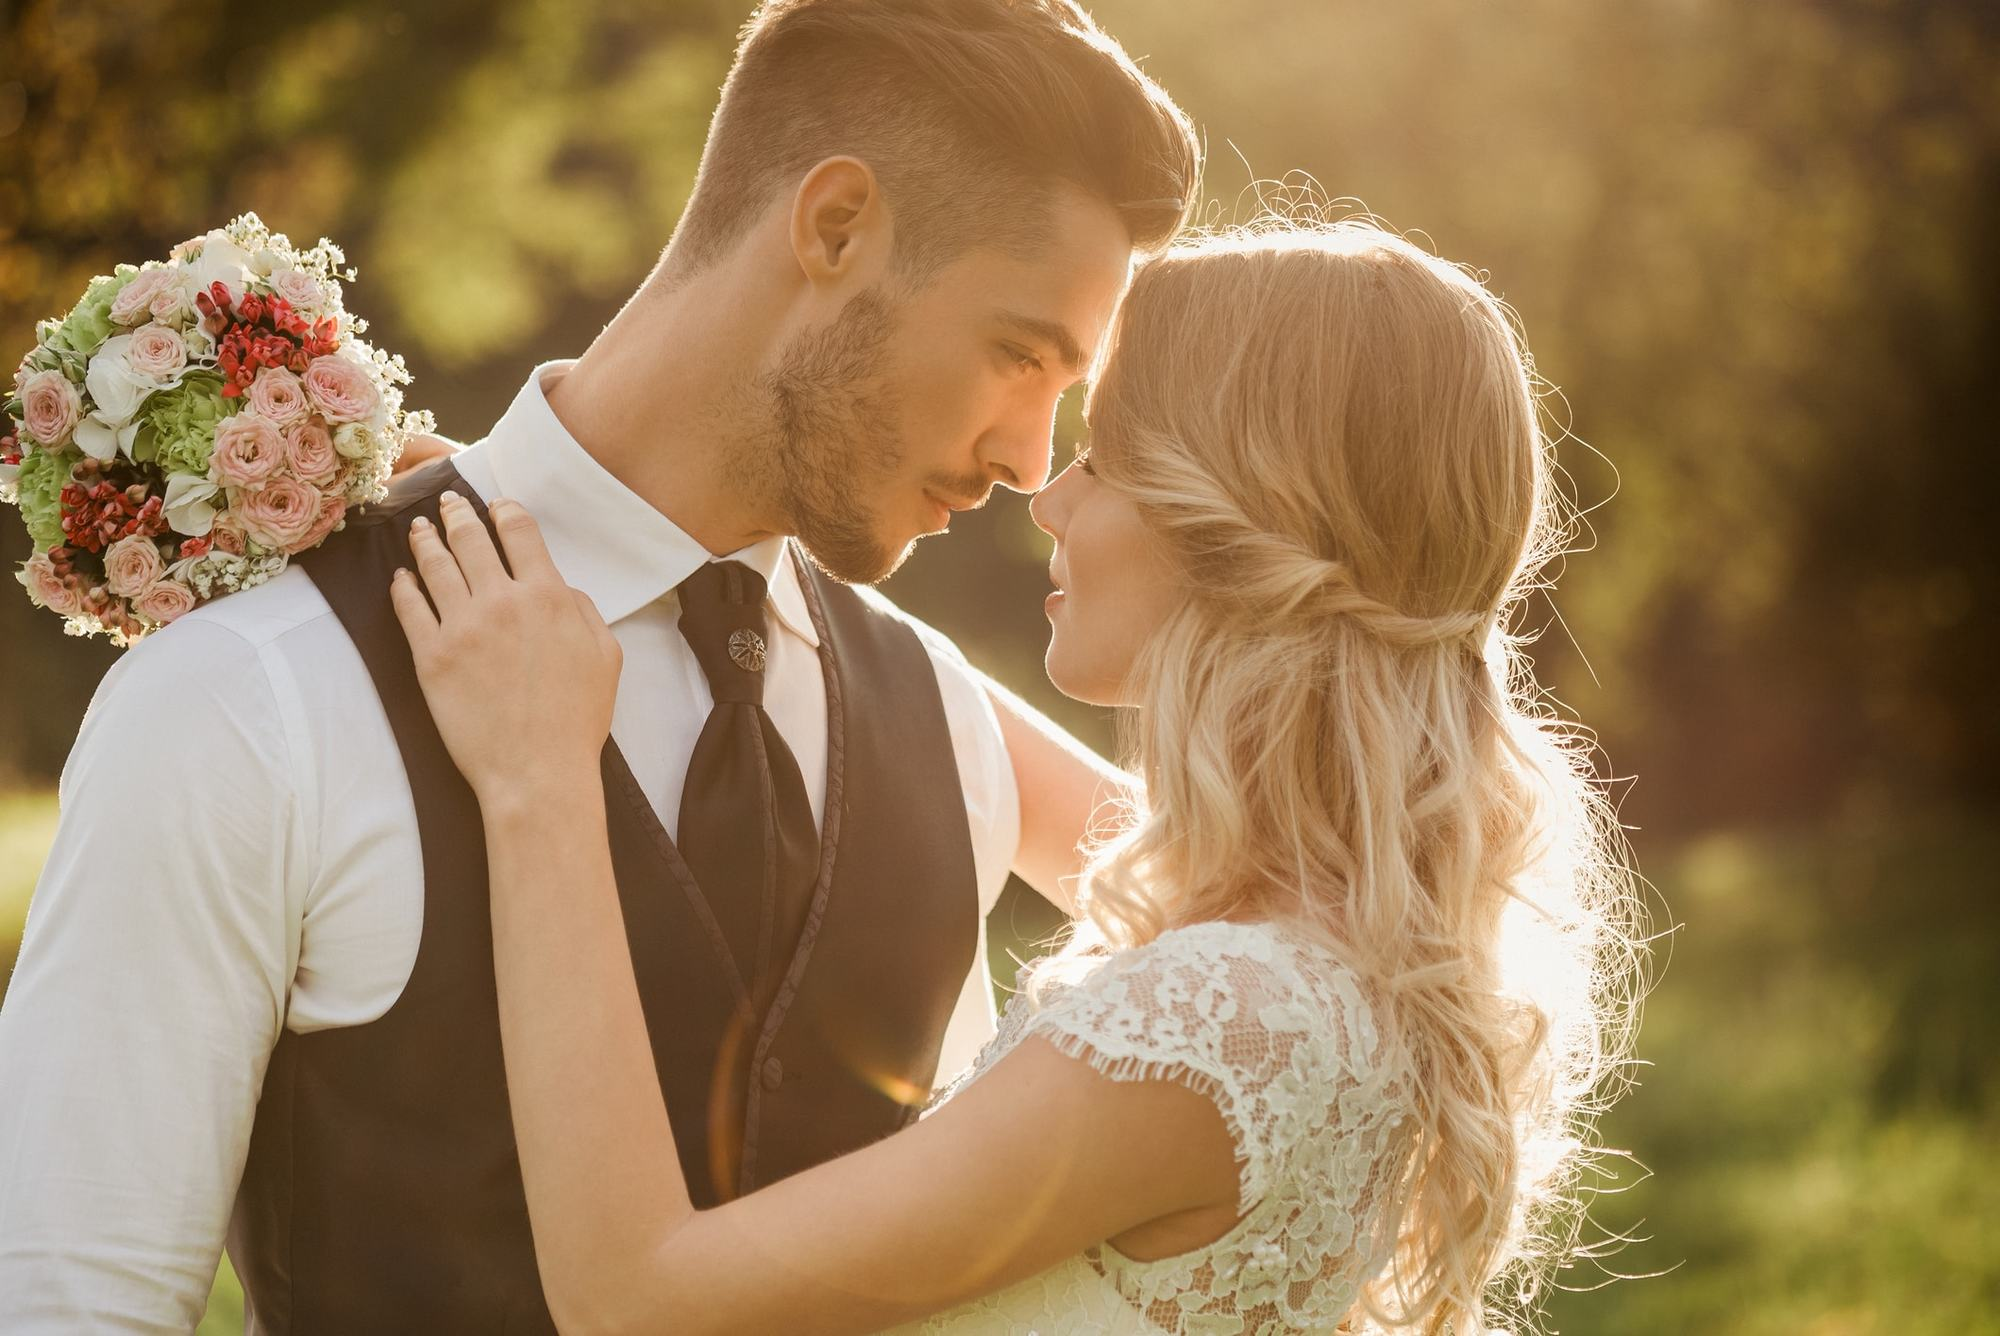 Best wedding hair 23 looks to inspire your bridal style for Top 10 wedding sites